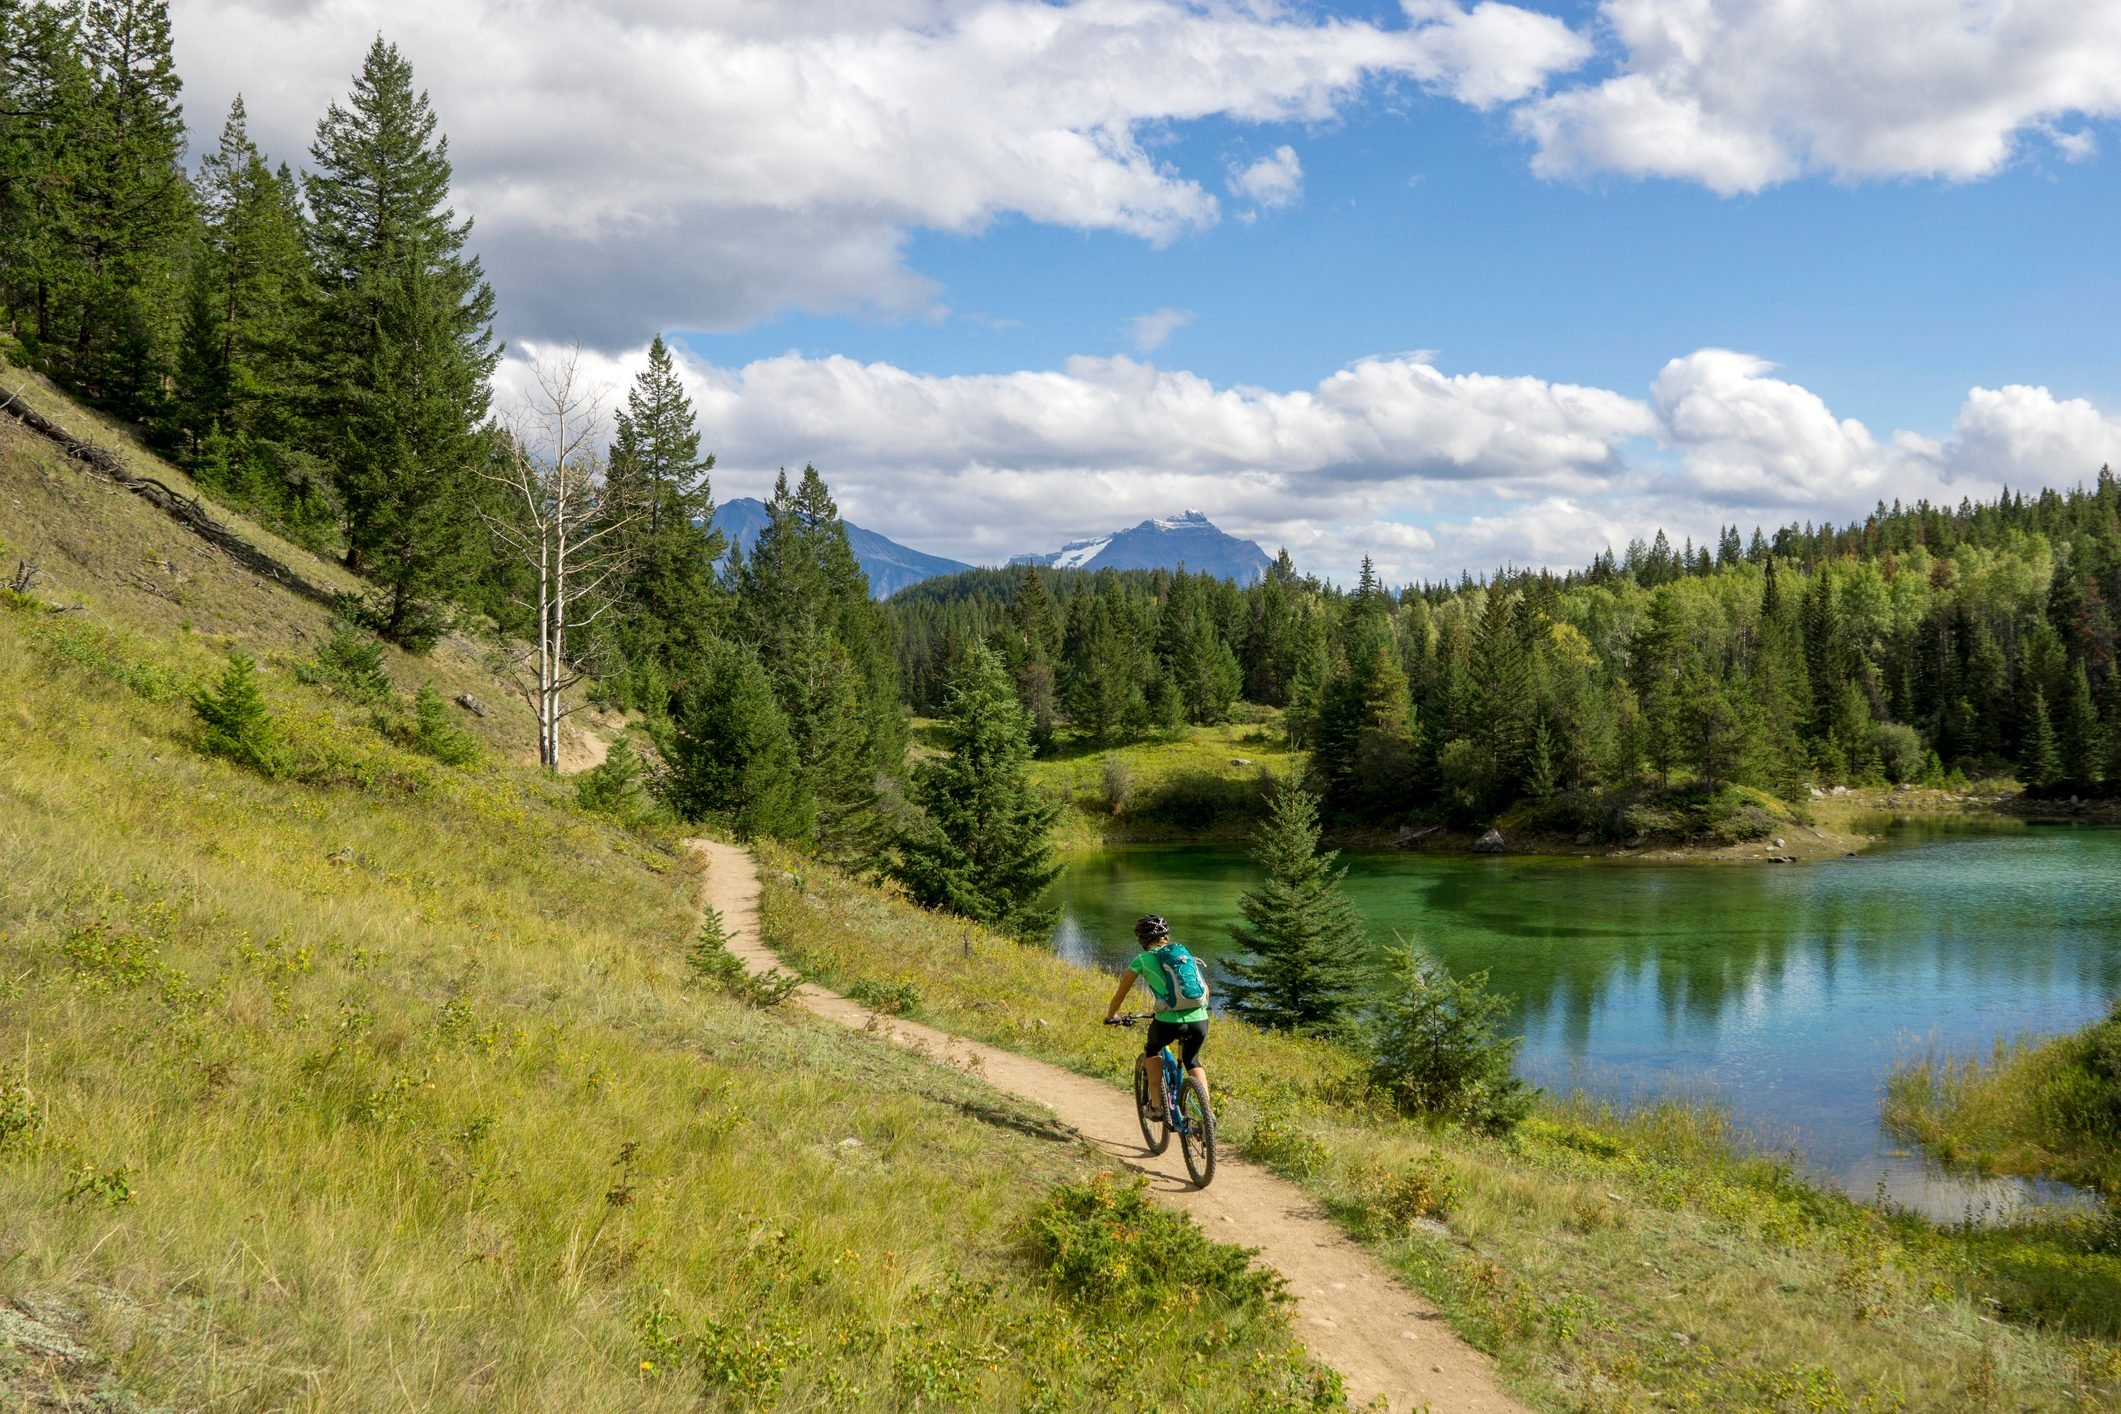 A woman mountain biking a scenic trail near a lake.